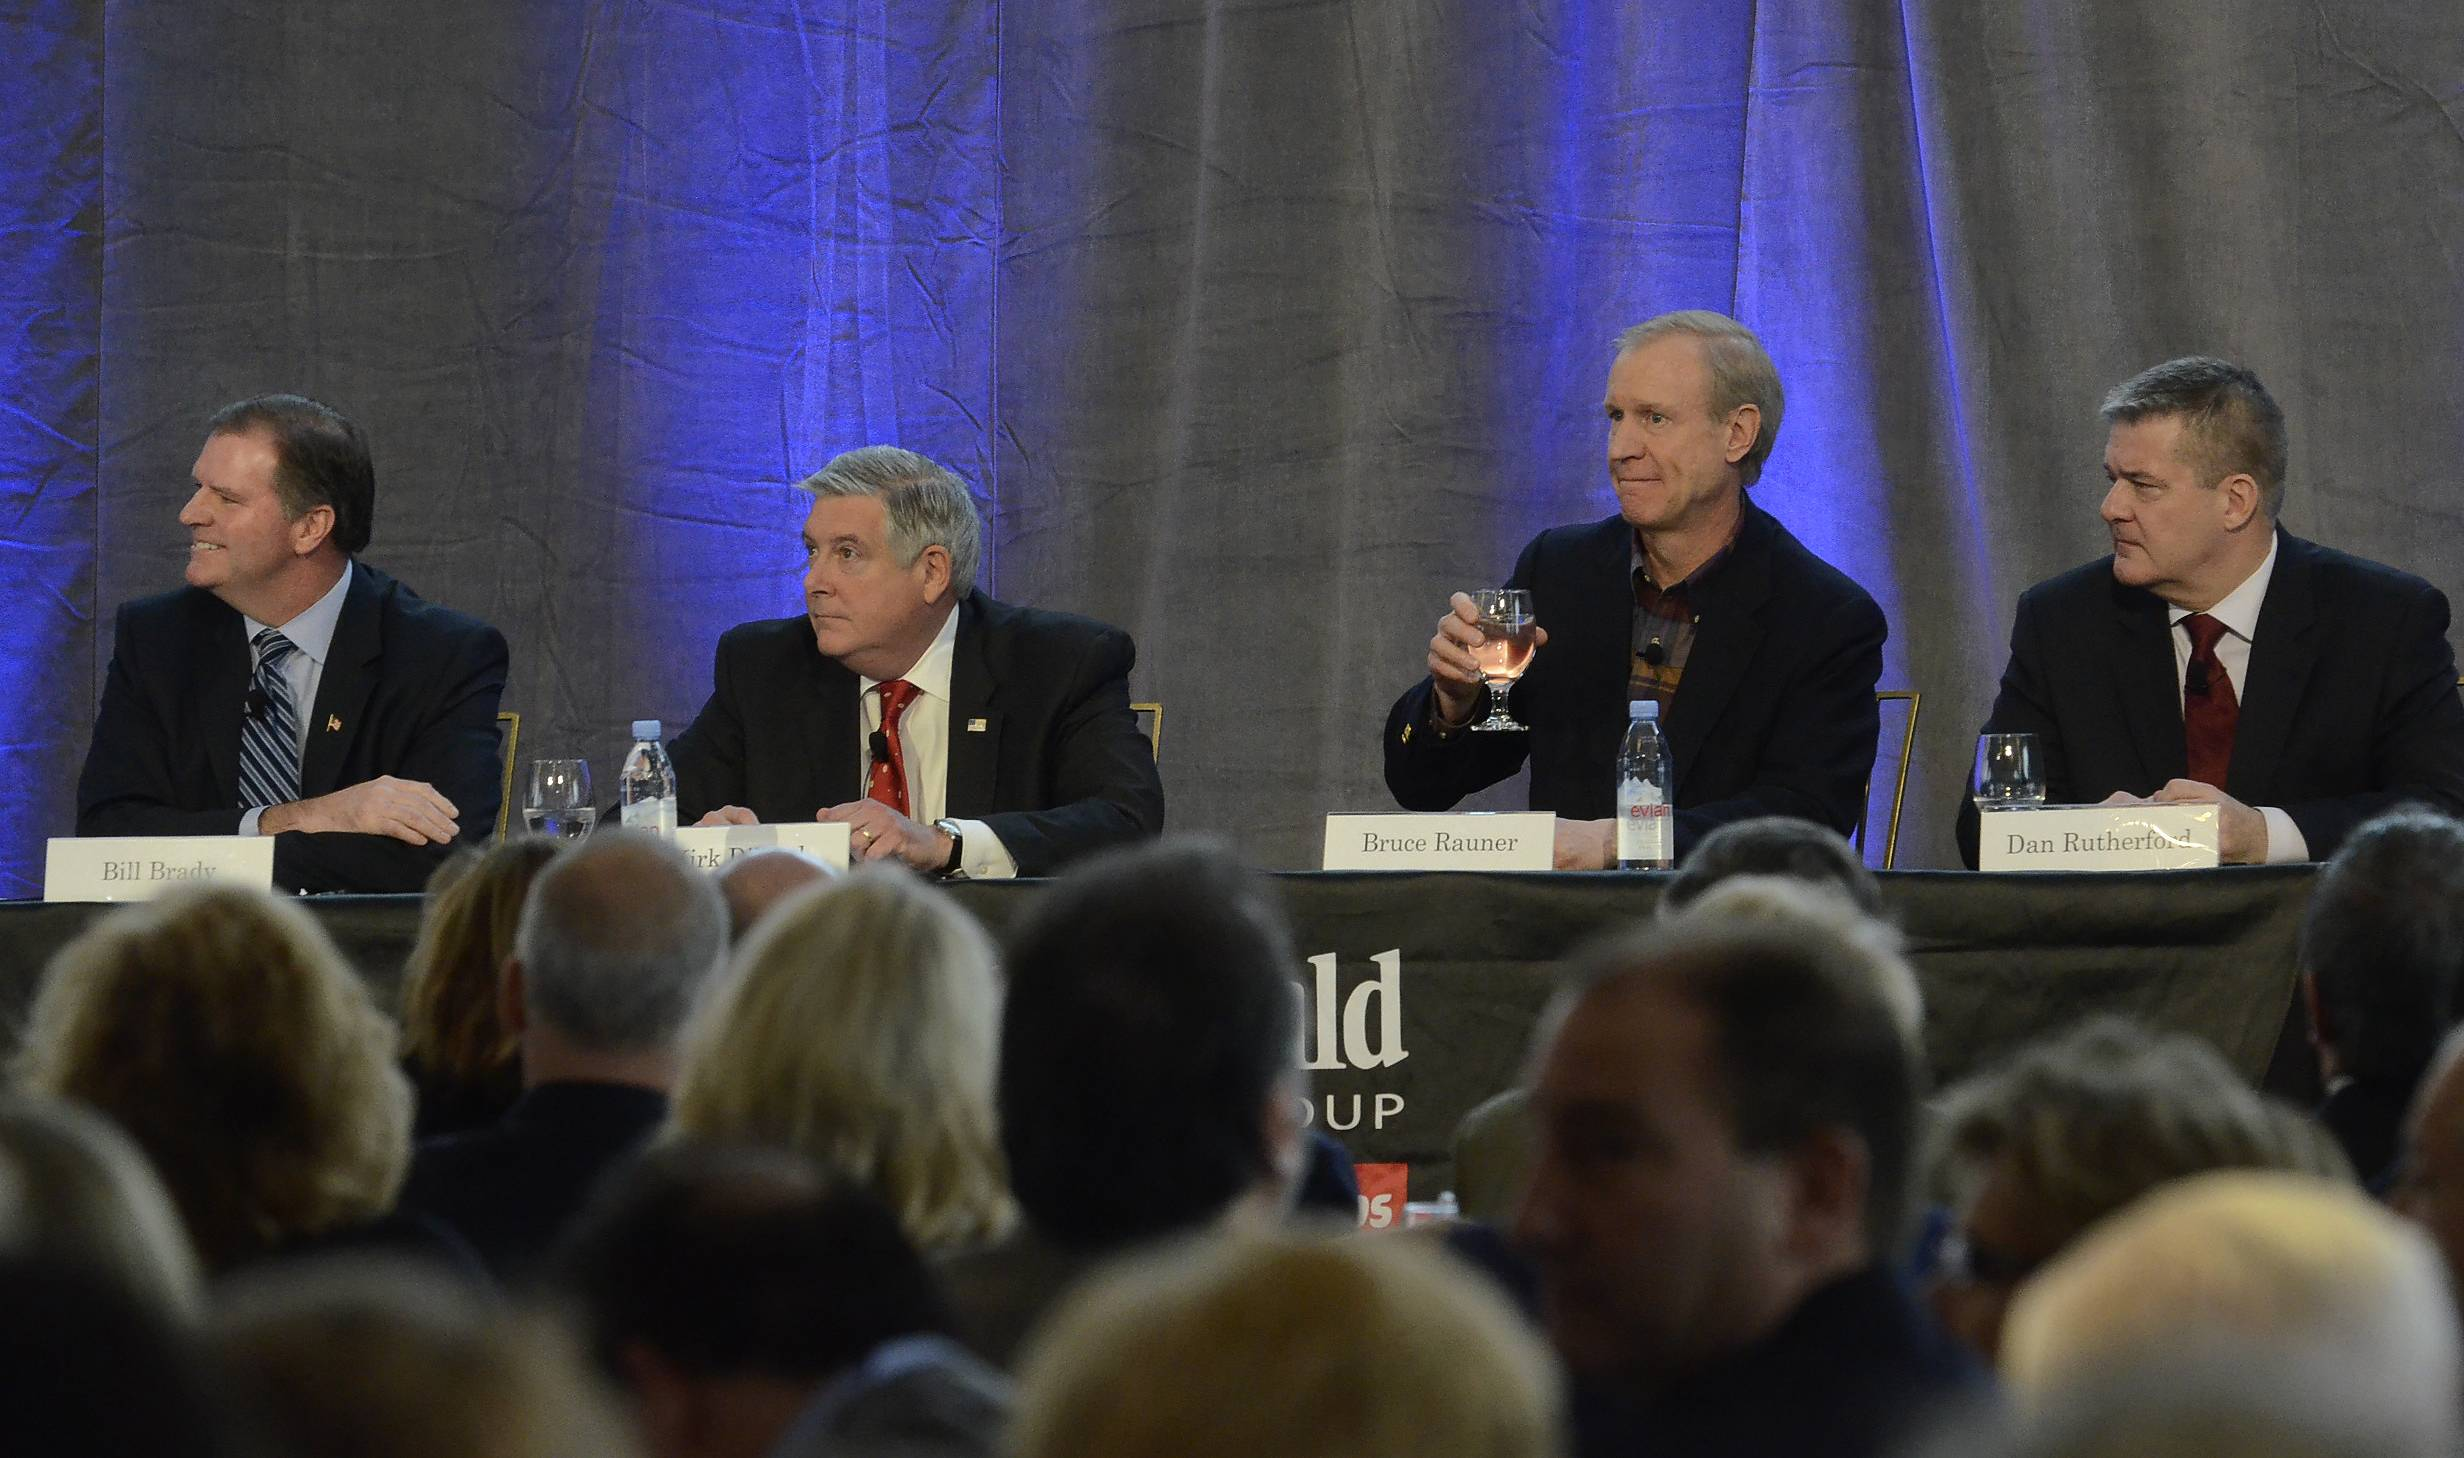 Daily Herald photo/Bob ChwedykGOP governor candidates forum, from left, State Sen. Bill Brady, State Sen. Kirk Dillard, Bruce Rauner, and Illinois Treasurer Dan Rutherford.